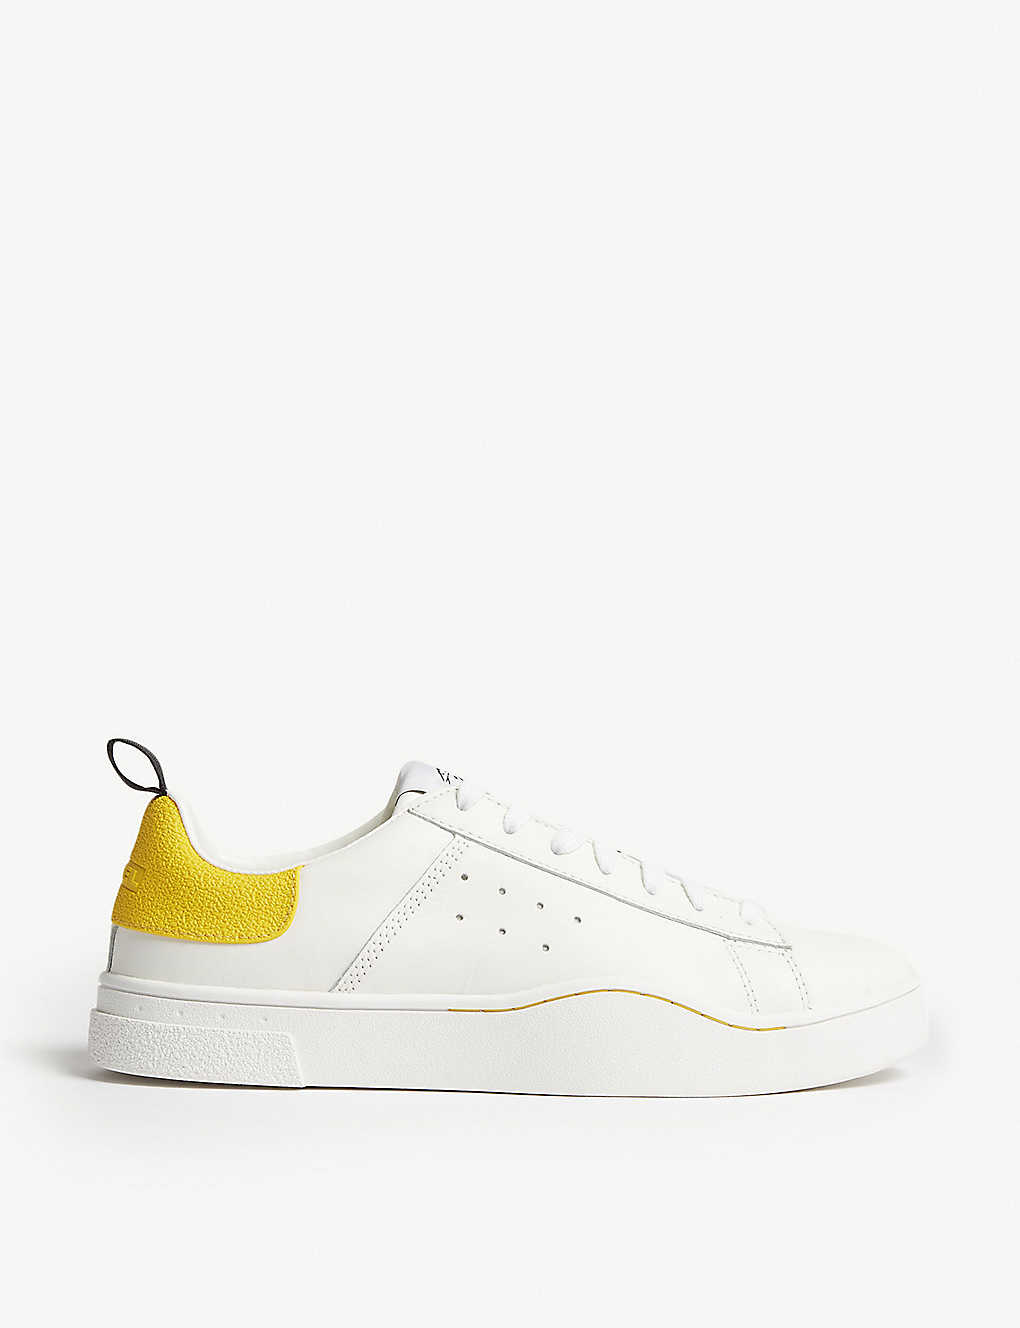 DIESEL: S-Clever leather low-top trainers